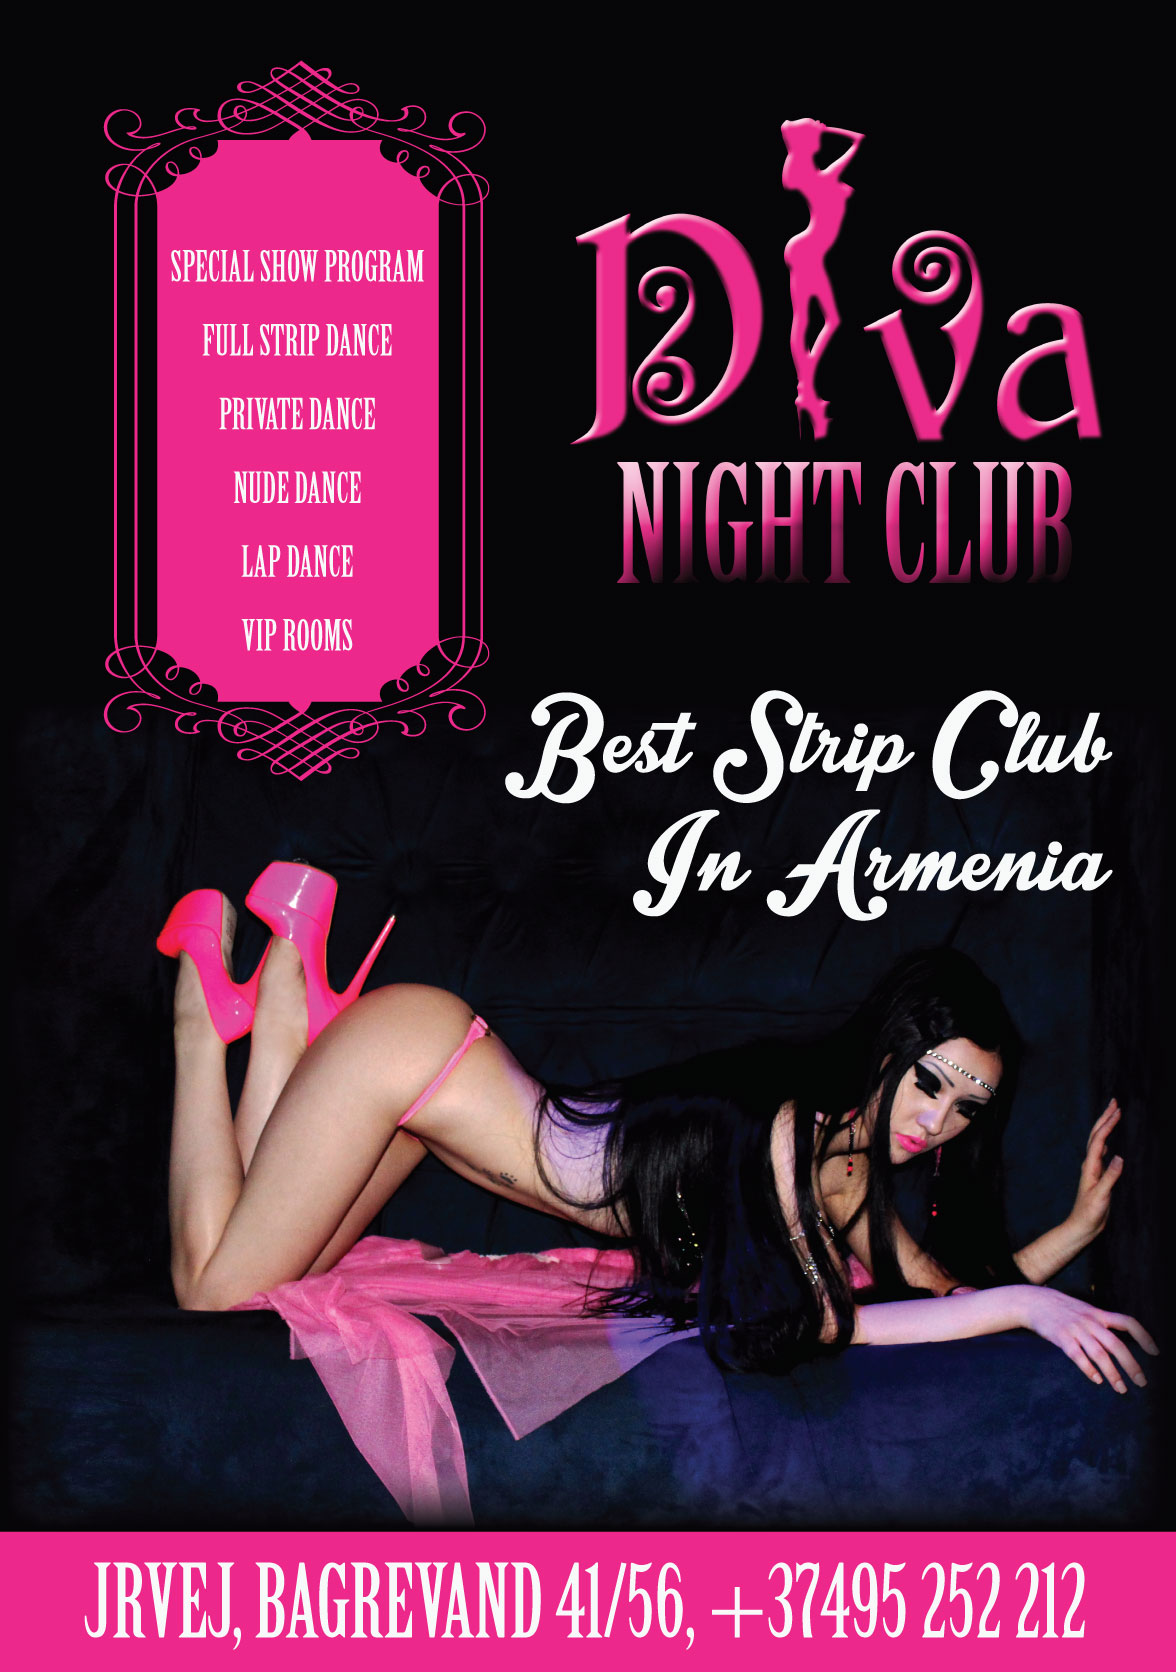 Best Strip Club In Armenia